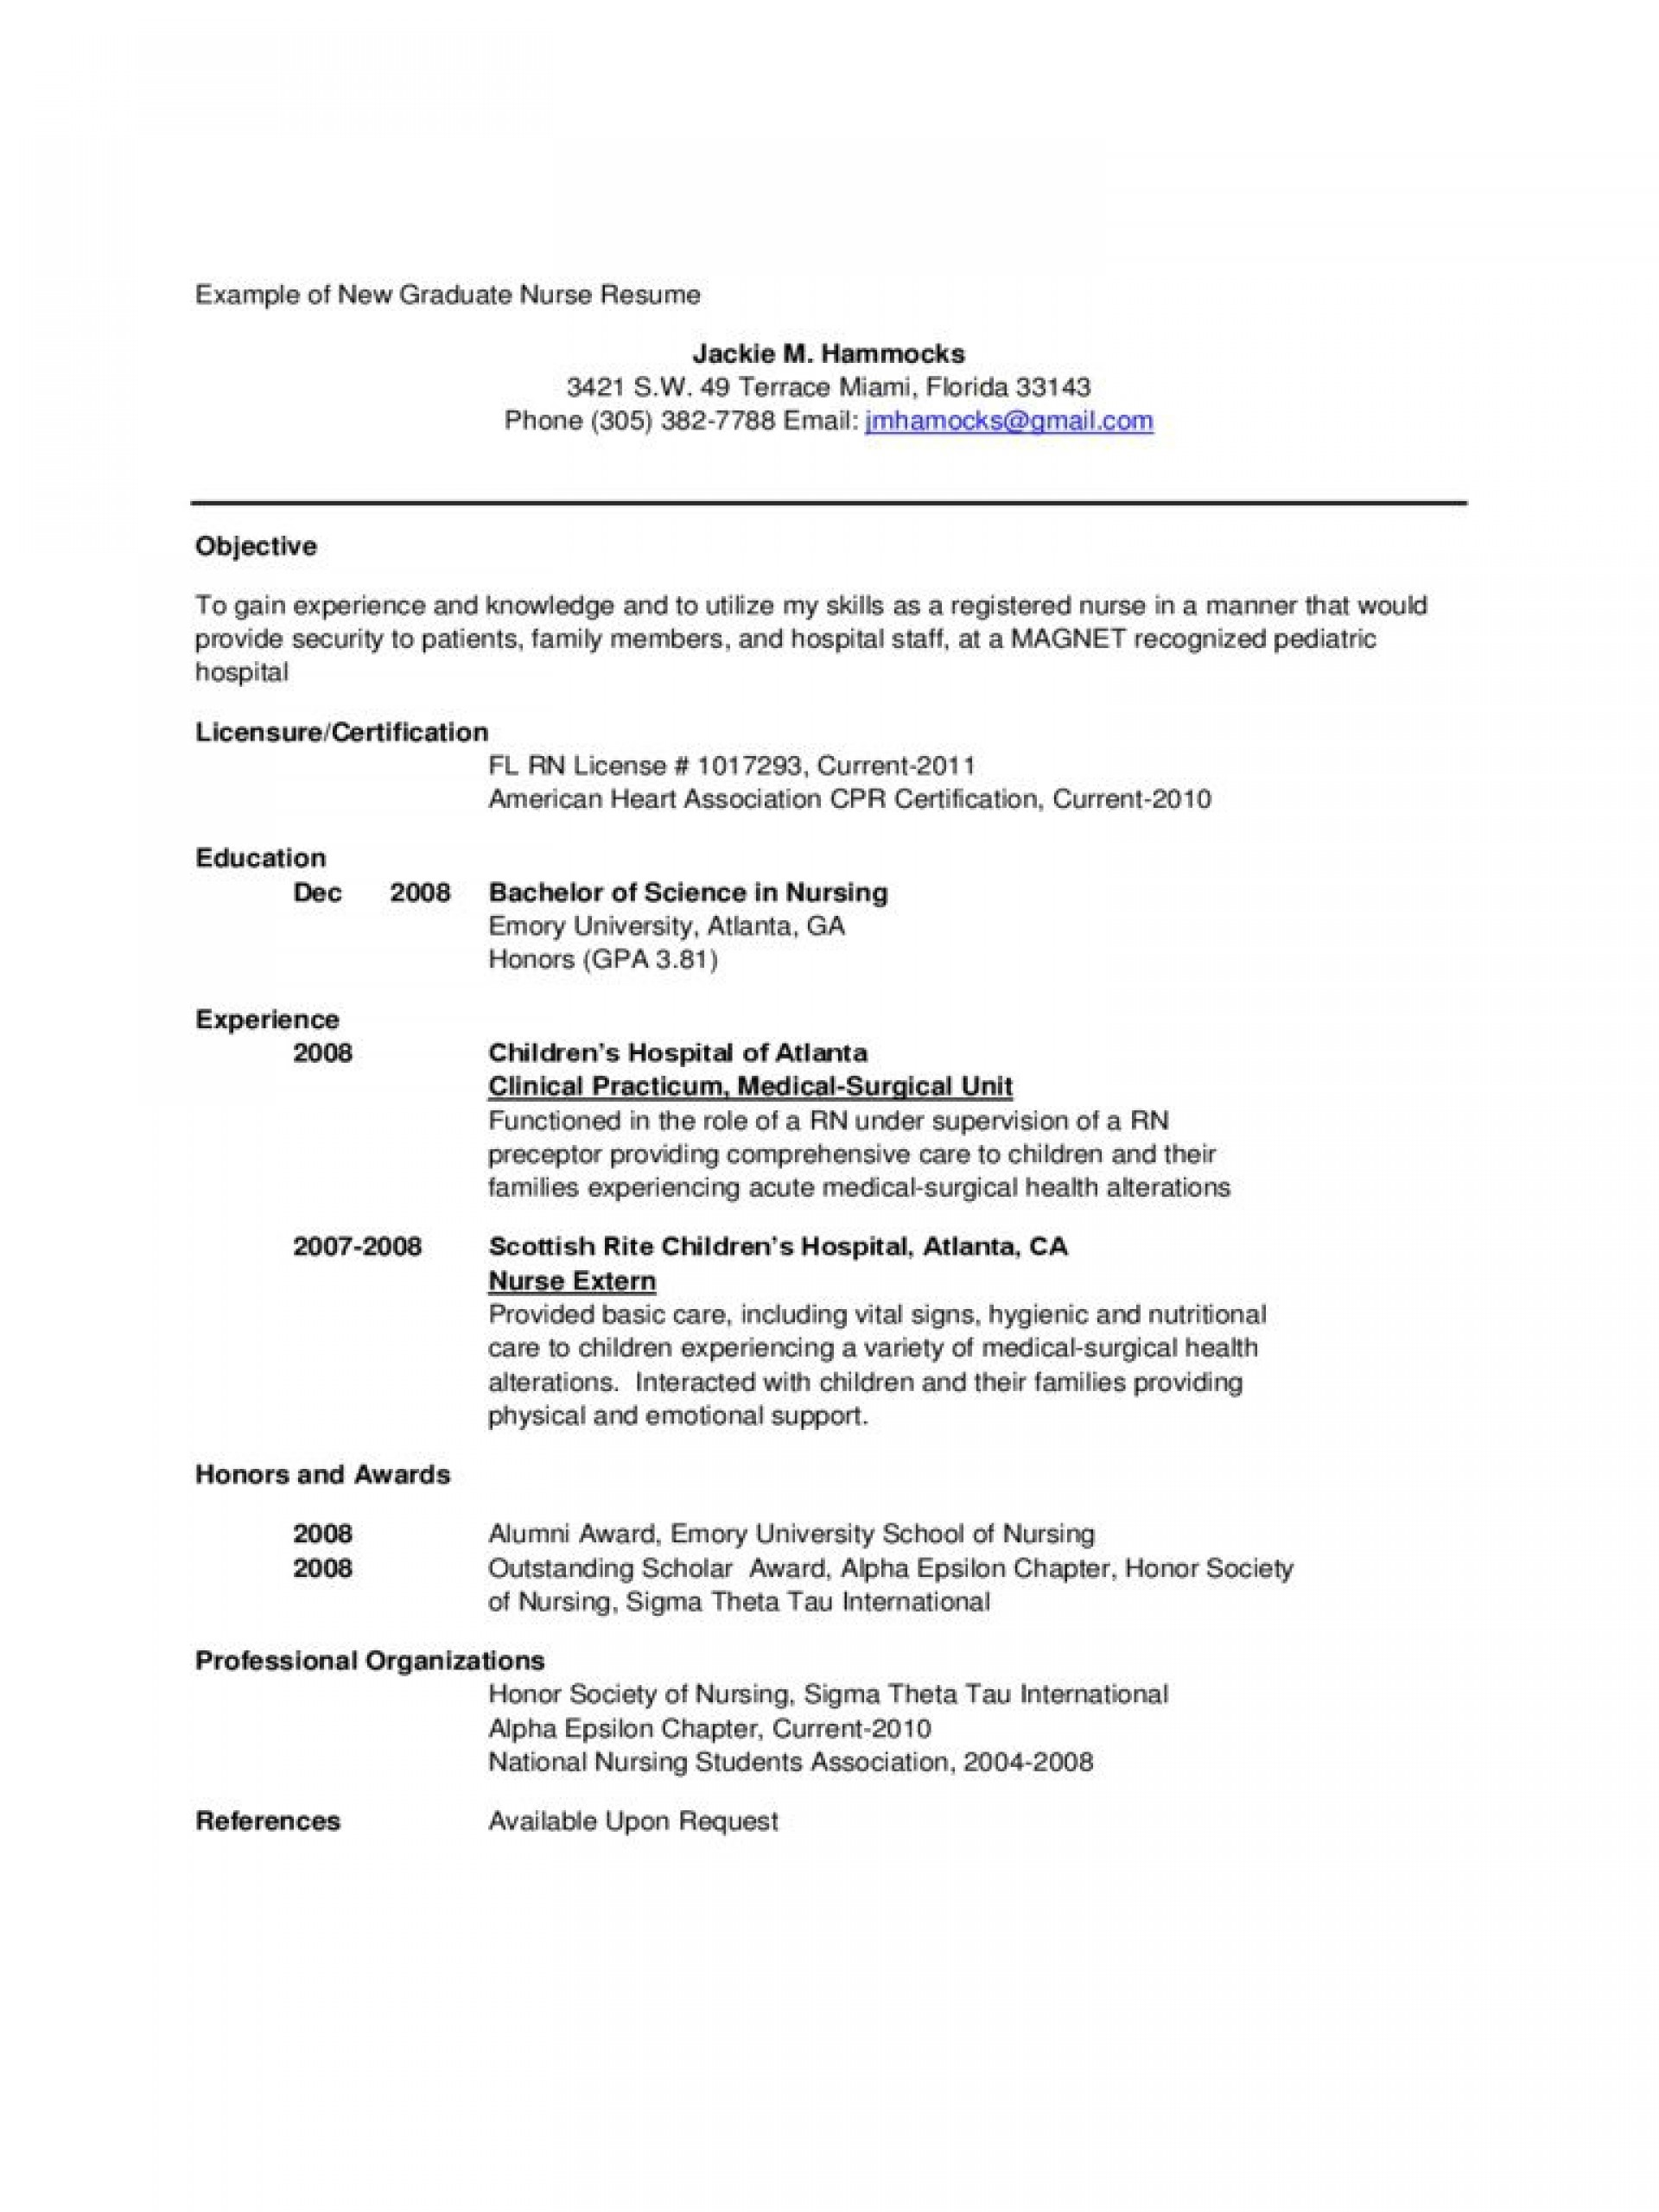 001 Archaicawful Resume Template For Nurse High Resolution  Sample Nursing Assistant With No Experience Rn' Free1920